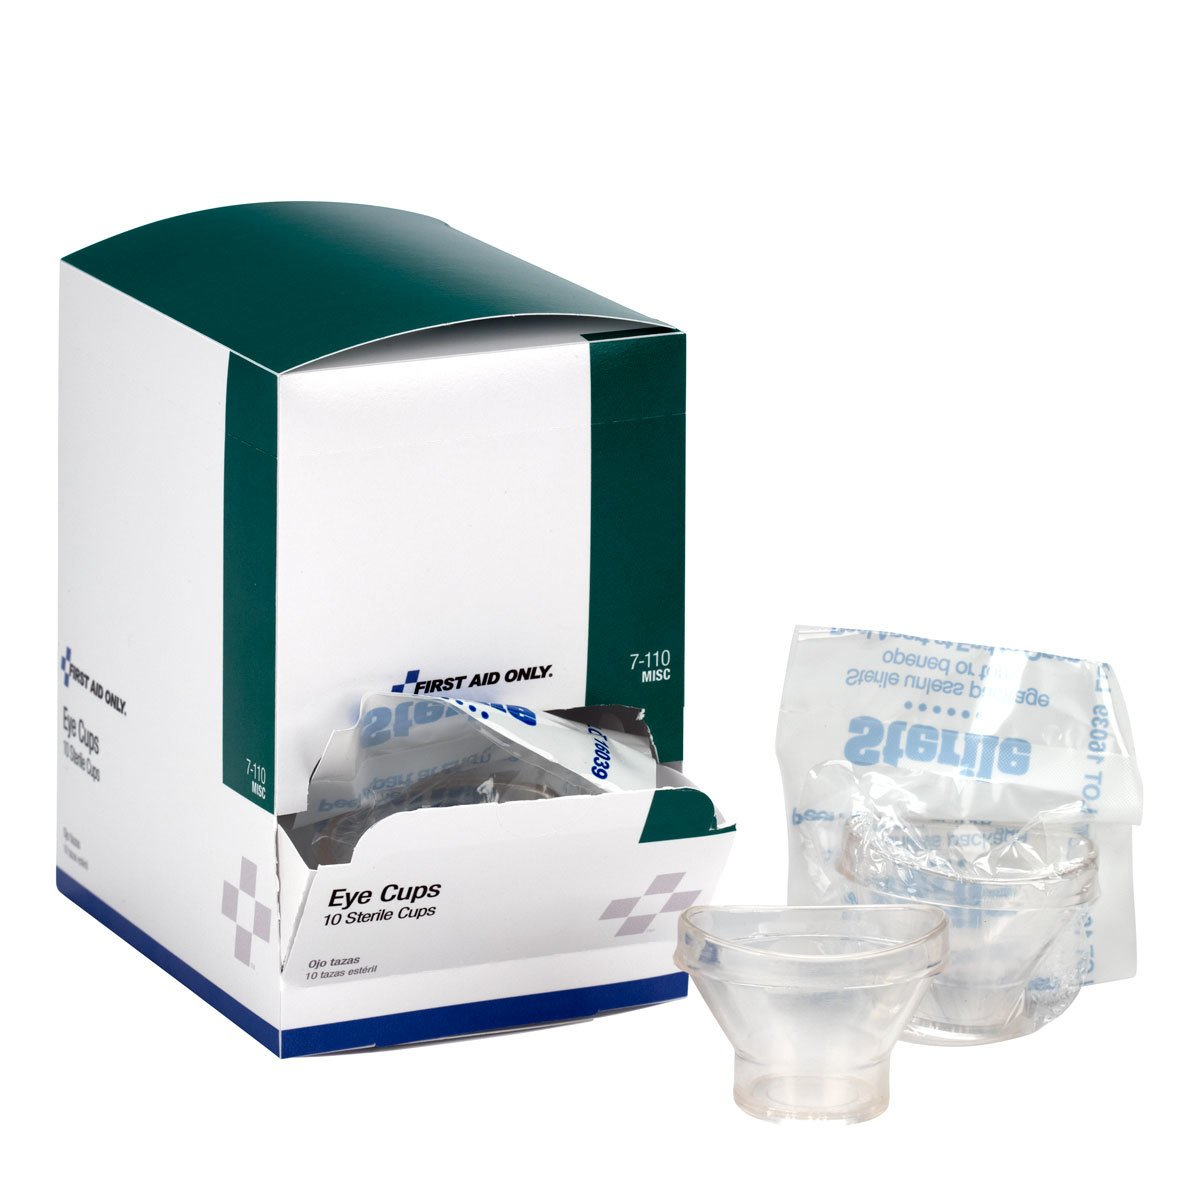 First Aid Only Sterile Eye Cups, 10 Per Box